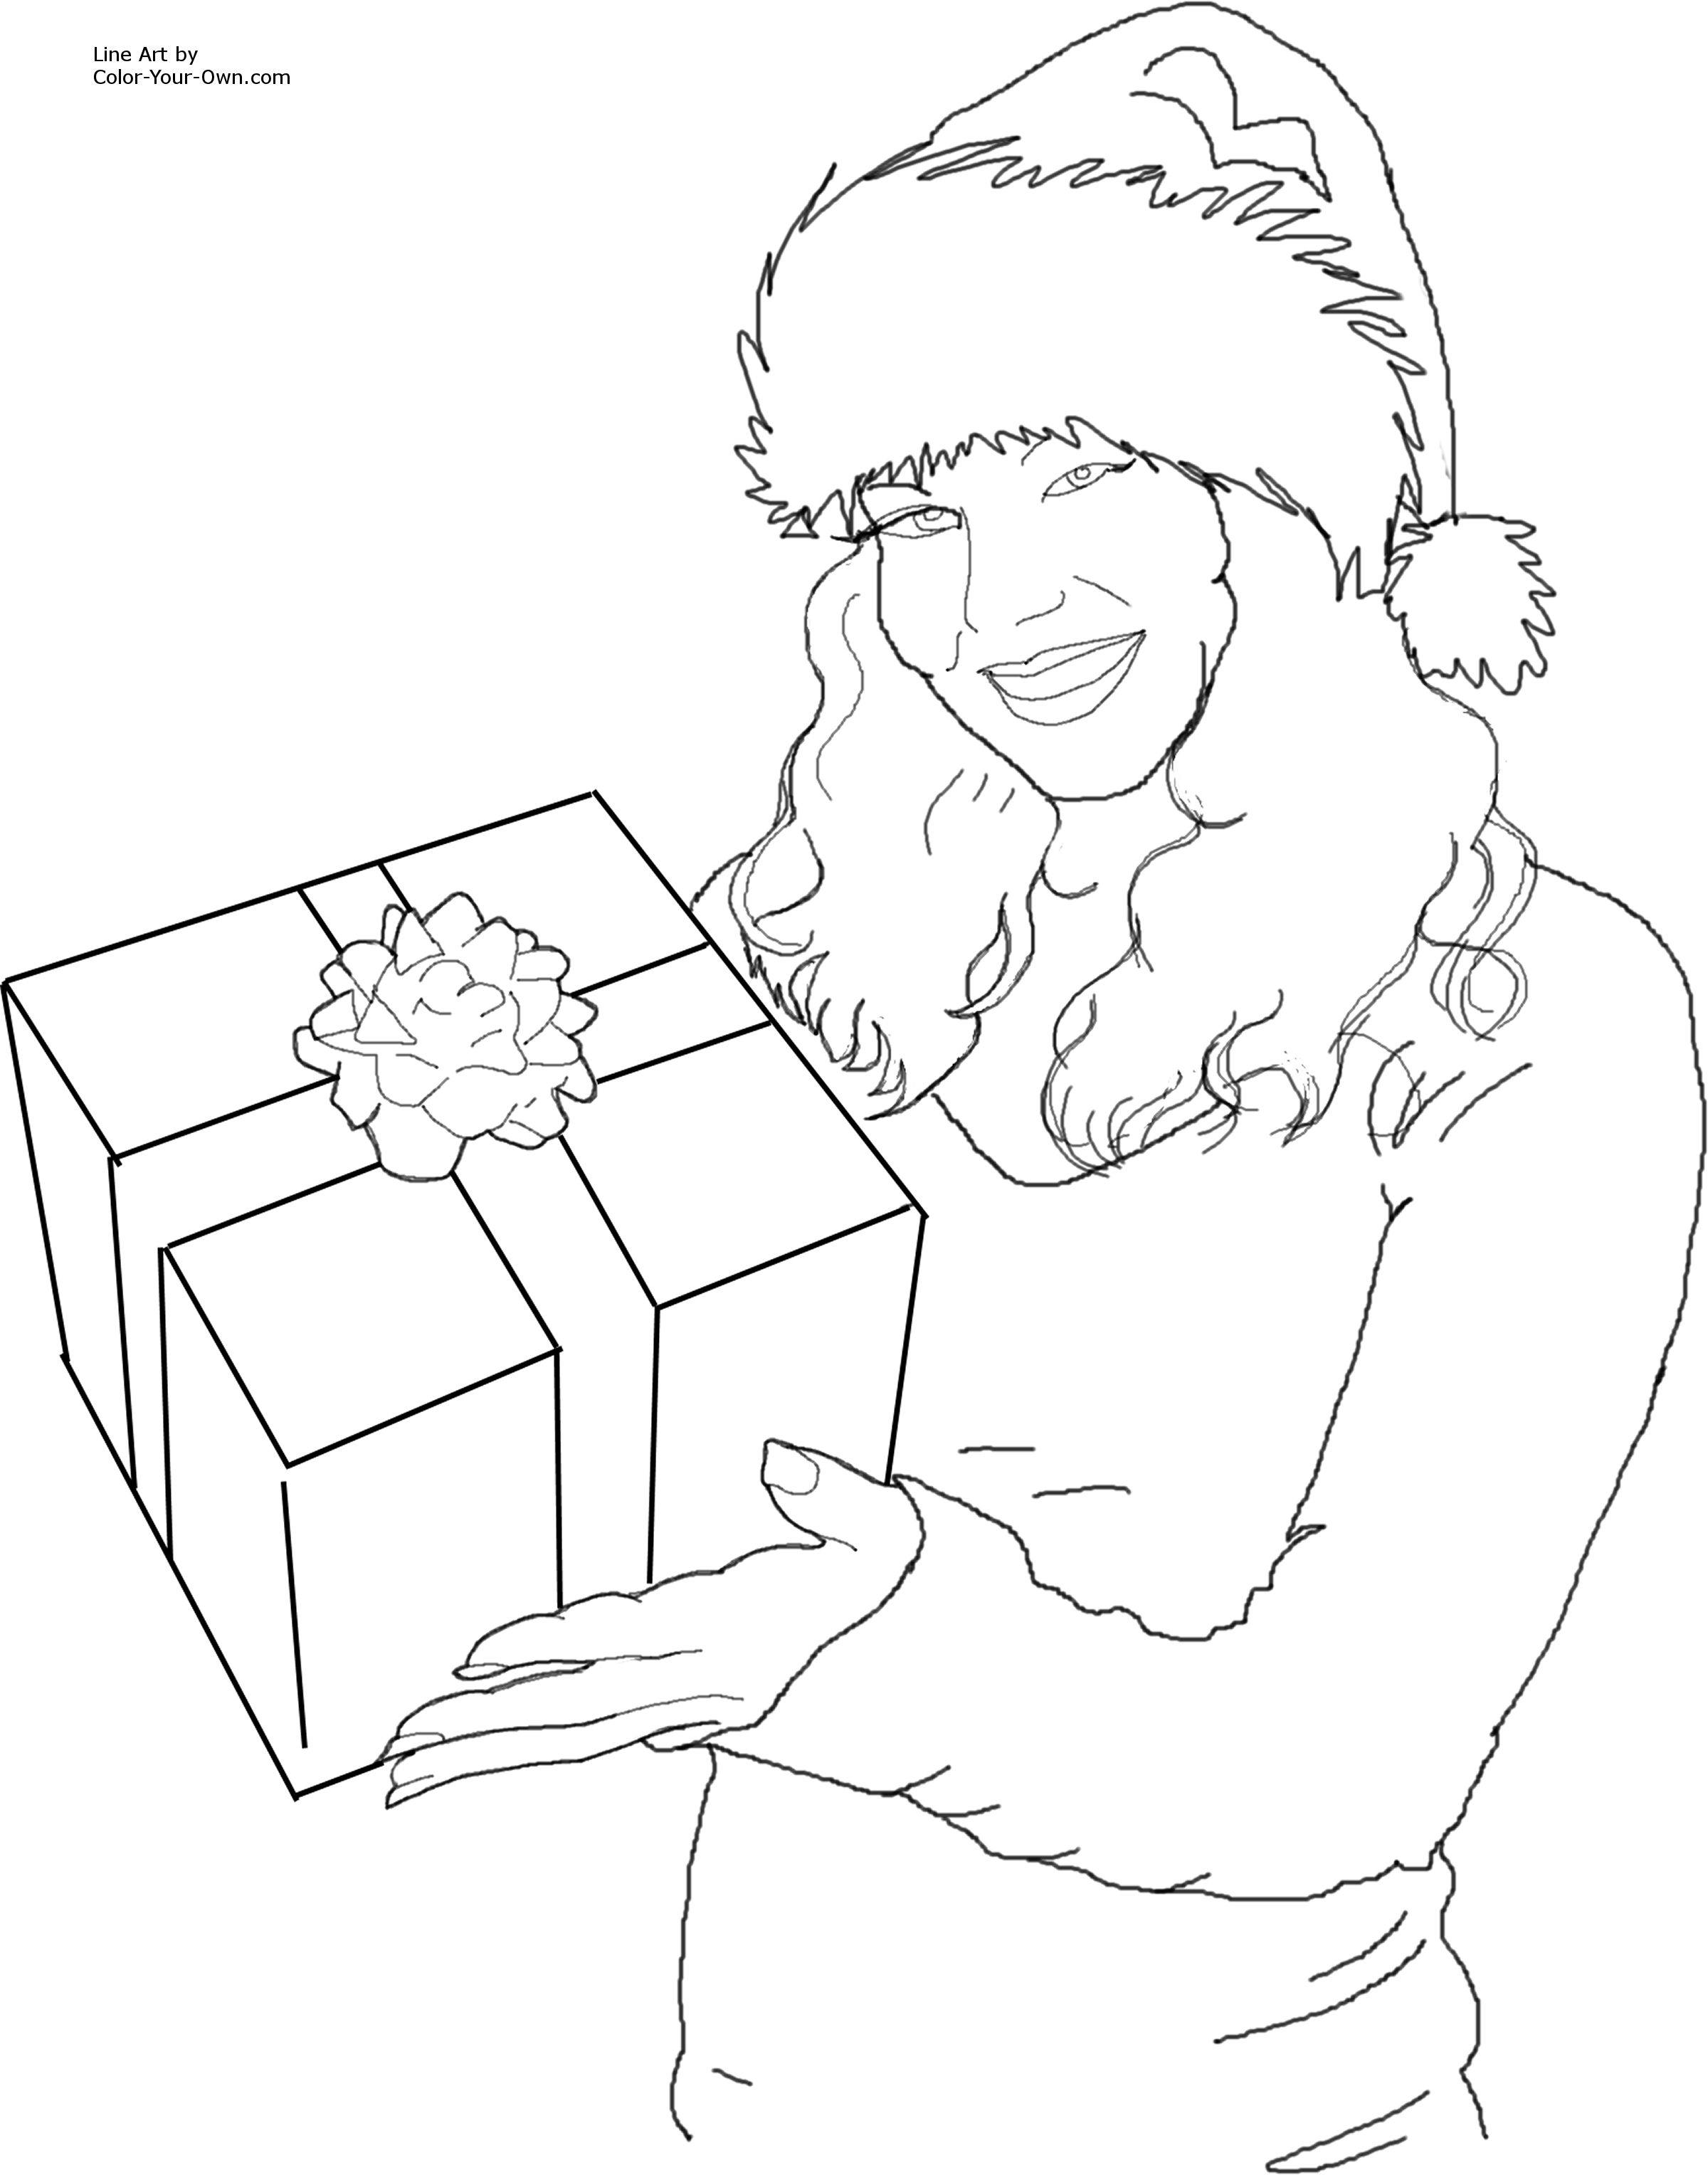 Silverado Drawing At Free For Personal Use 2008 Wiring Diagram Chevy 2500 2400x3056 Christmas Santas Helper With A Gift Coloring Page